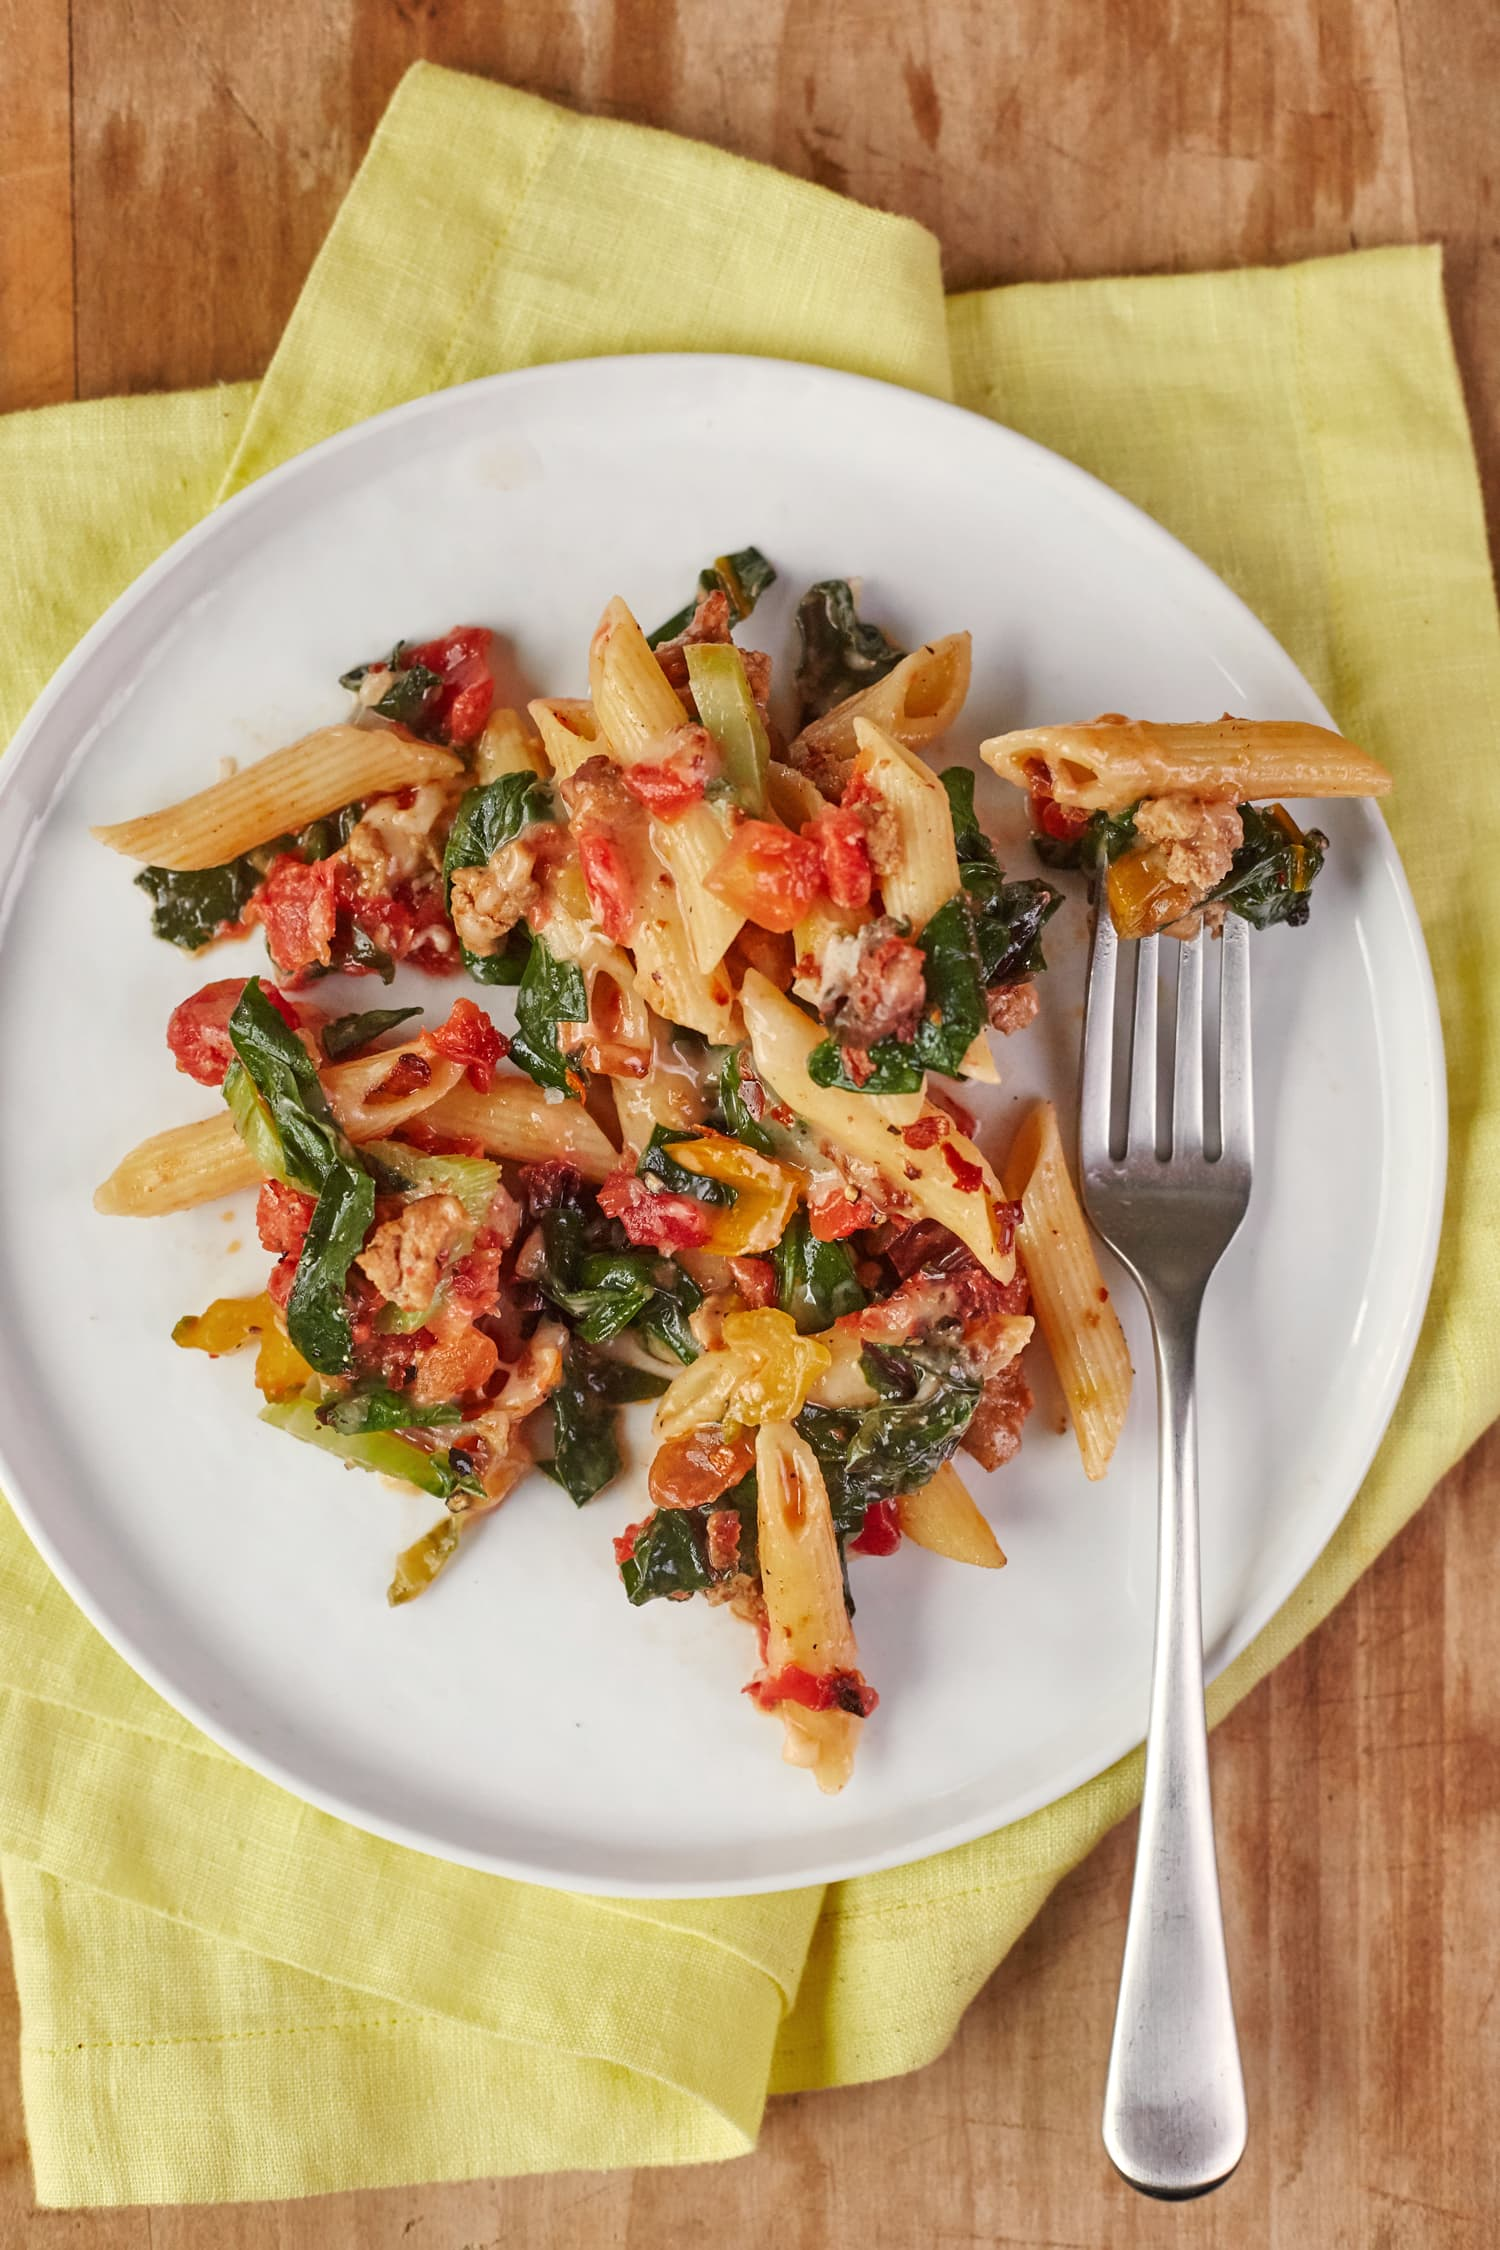 10 Fast and Cheap Ways to Make a Healthy Pasta Dinner